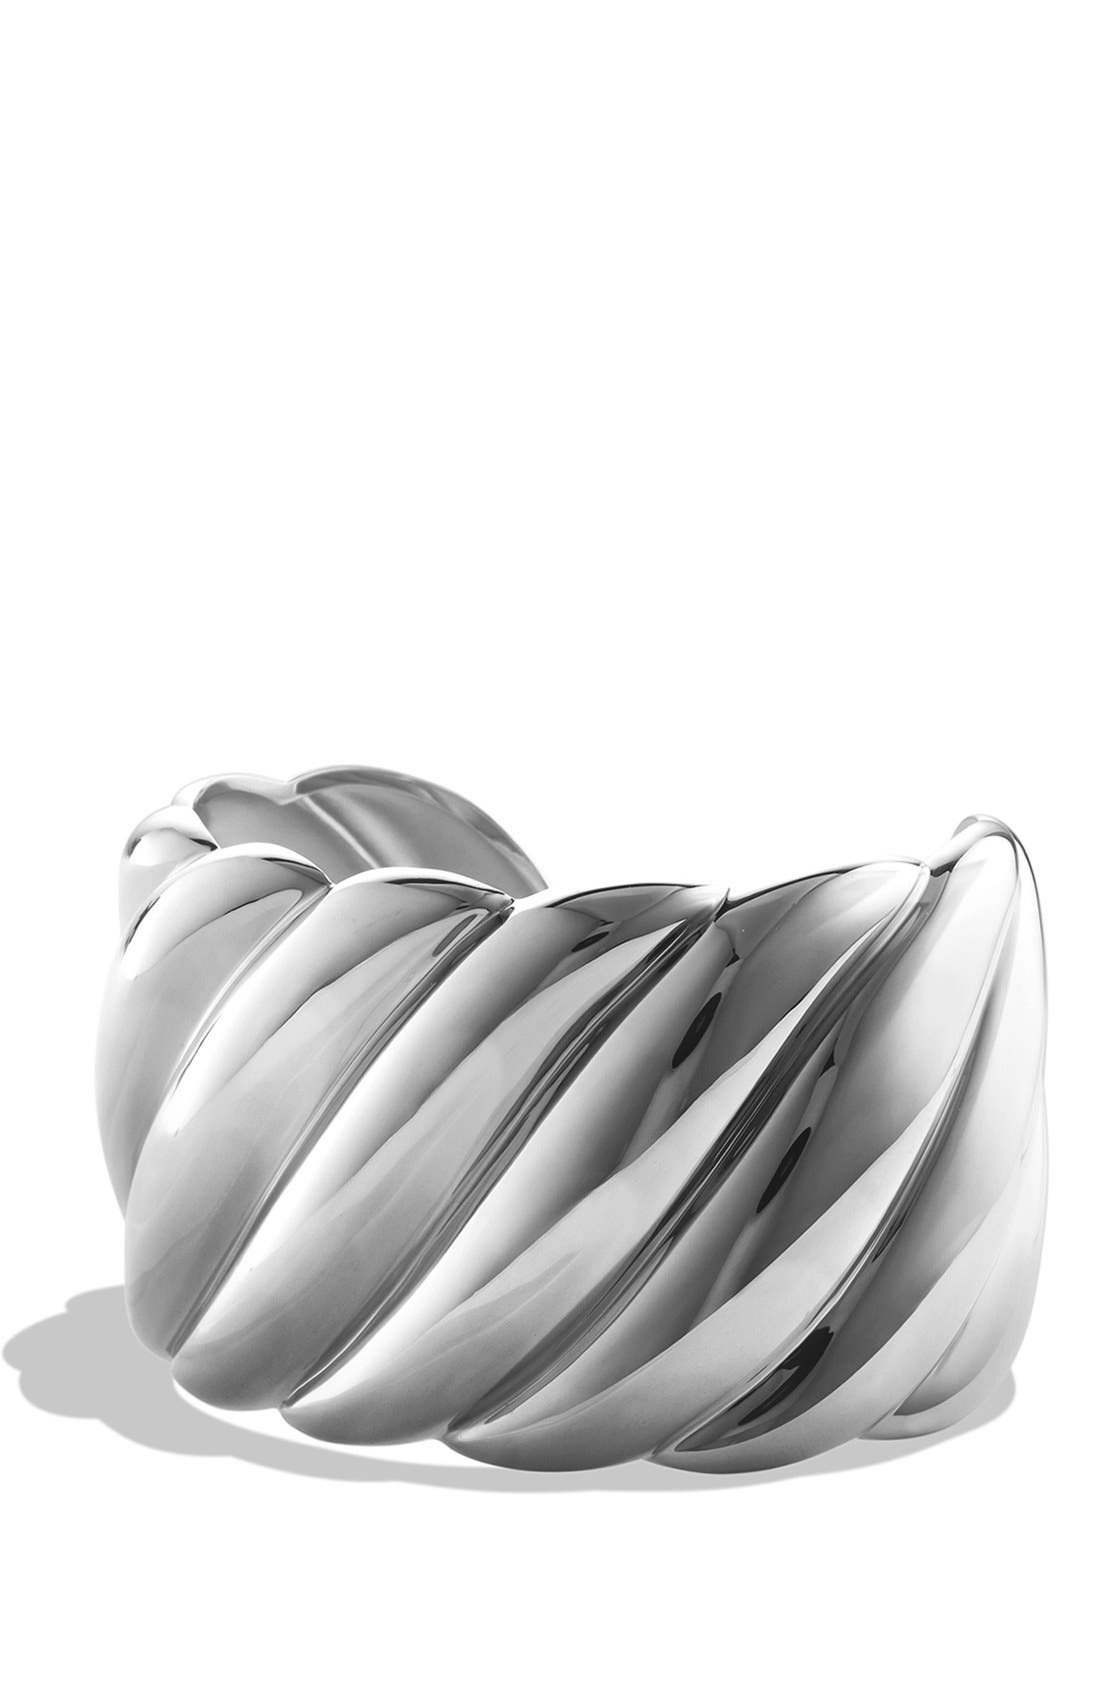 Alternate Image 1 Selected - David Yurman 'Sculpted Cable' Wide Cuff